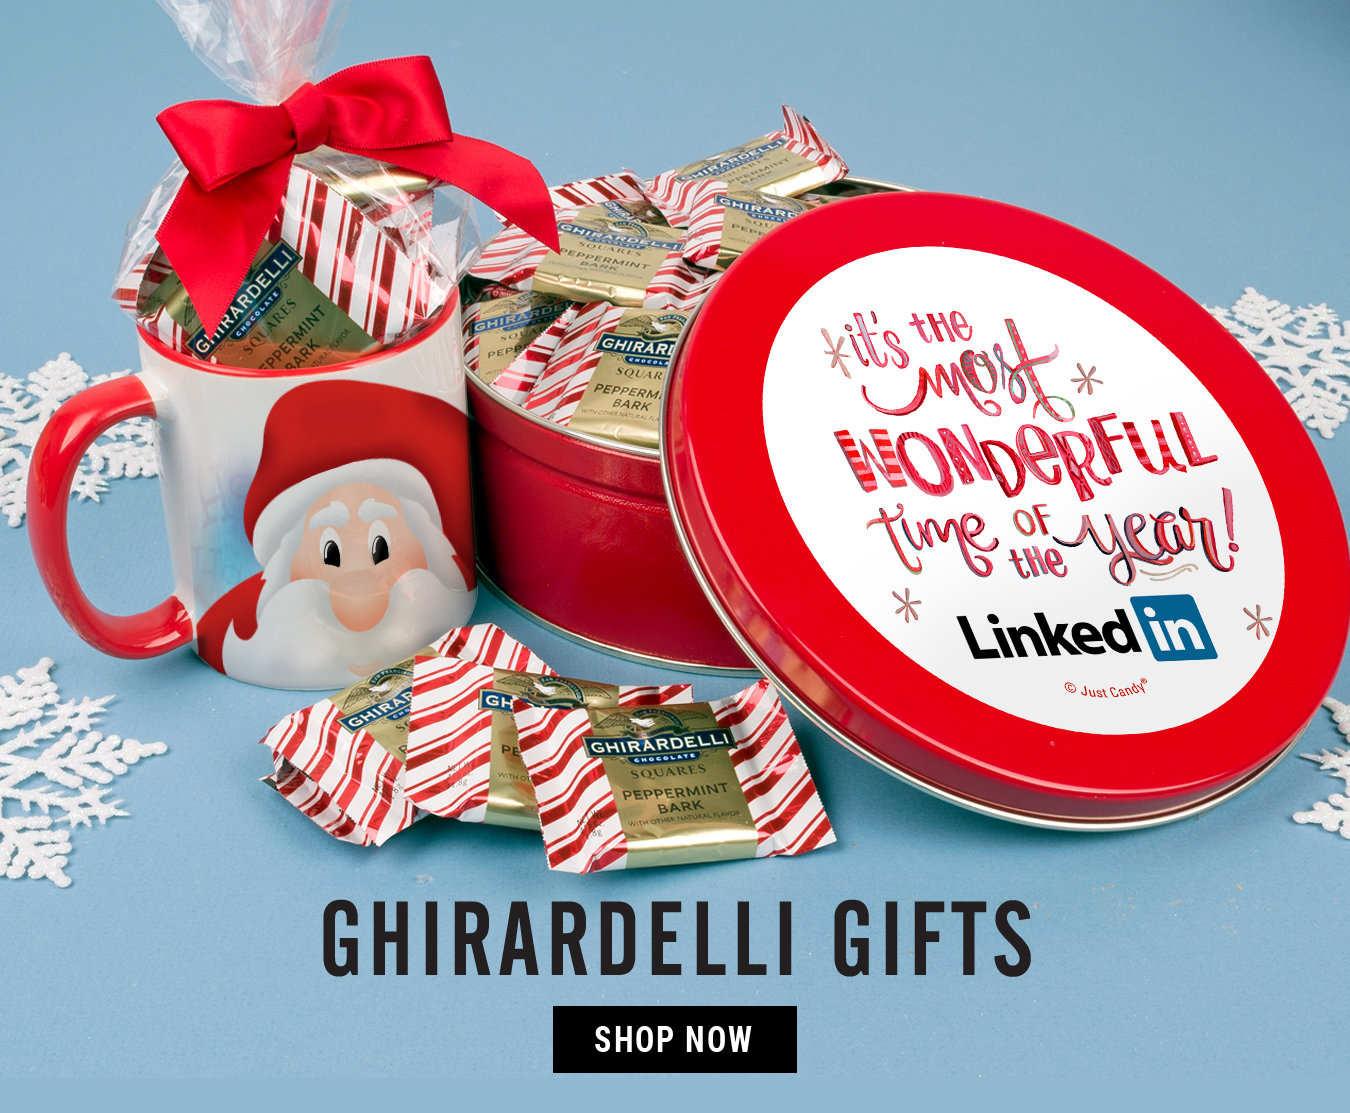 Gourmet Ghirardelli Gifts